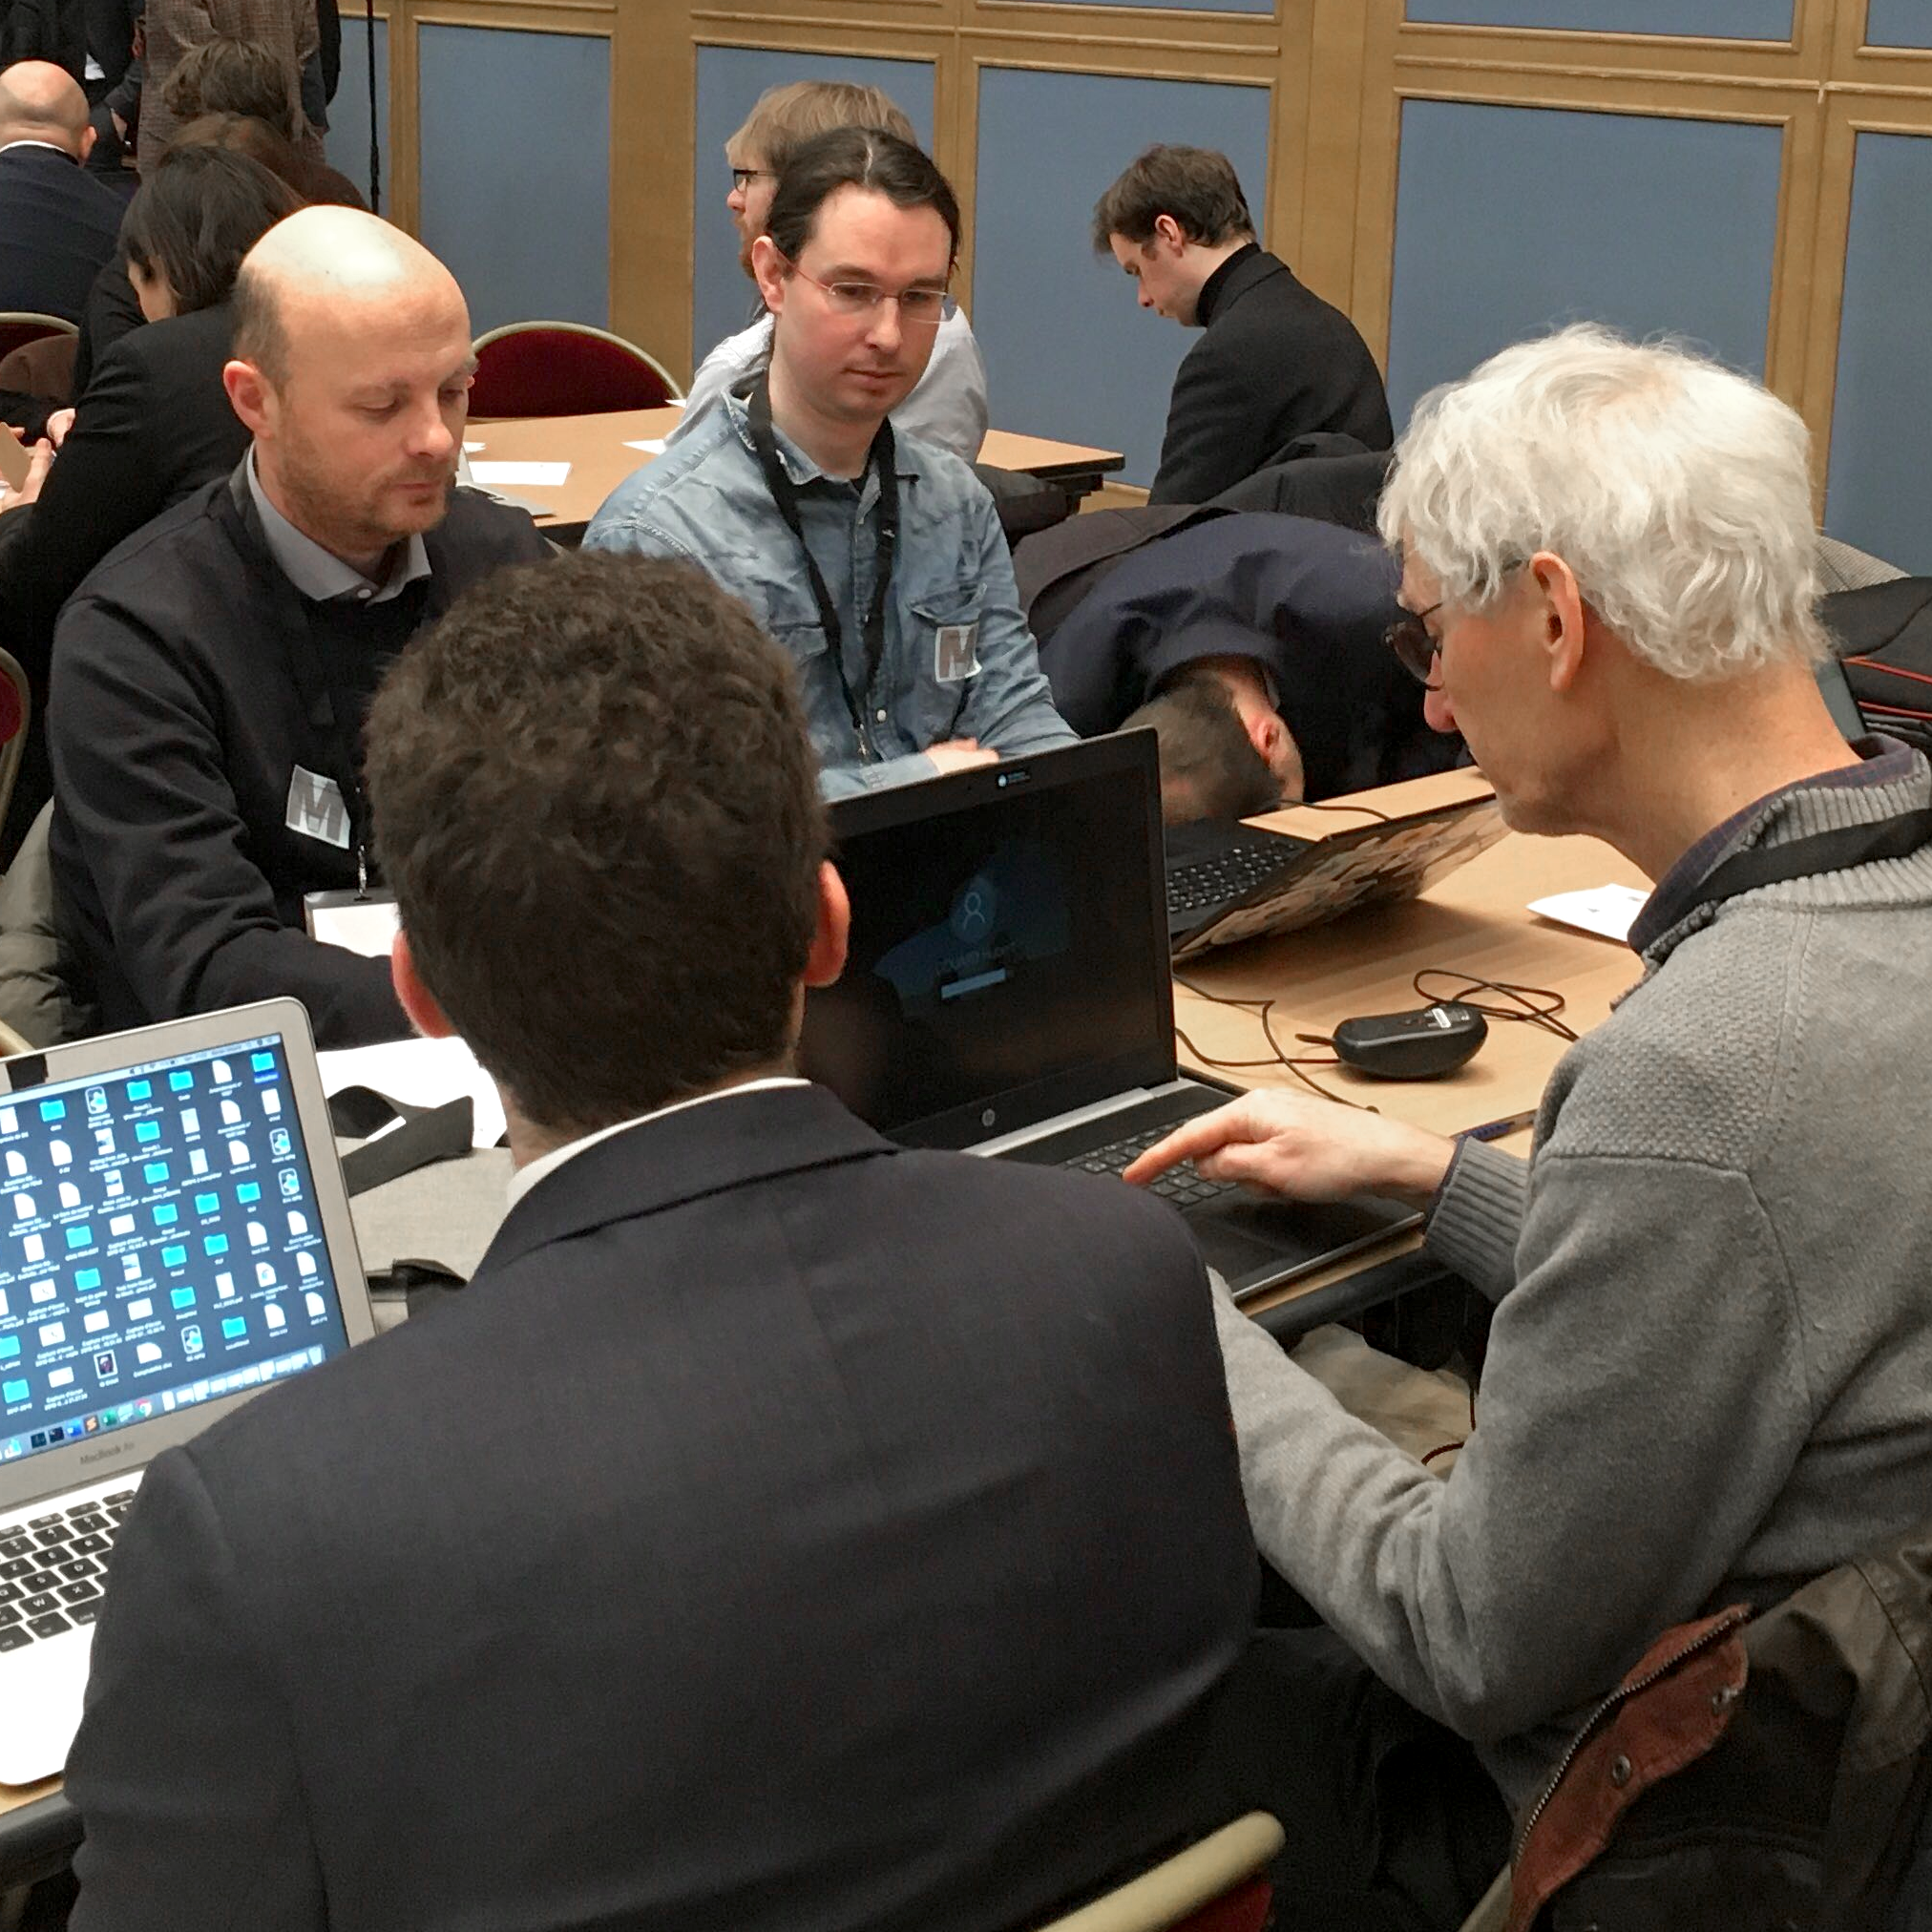 ARK CEO FX Thoorens in attendance of the DATAFIN Hackathon taking place in the French Senate.